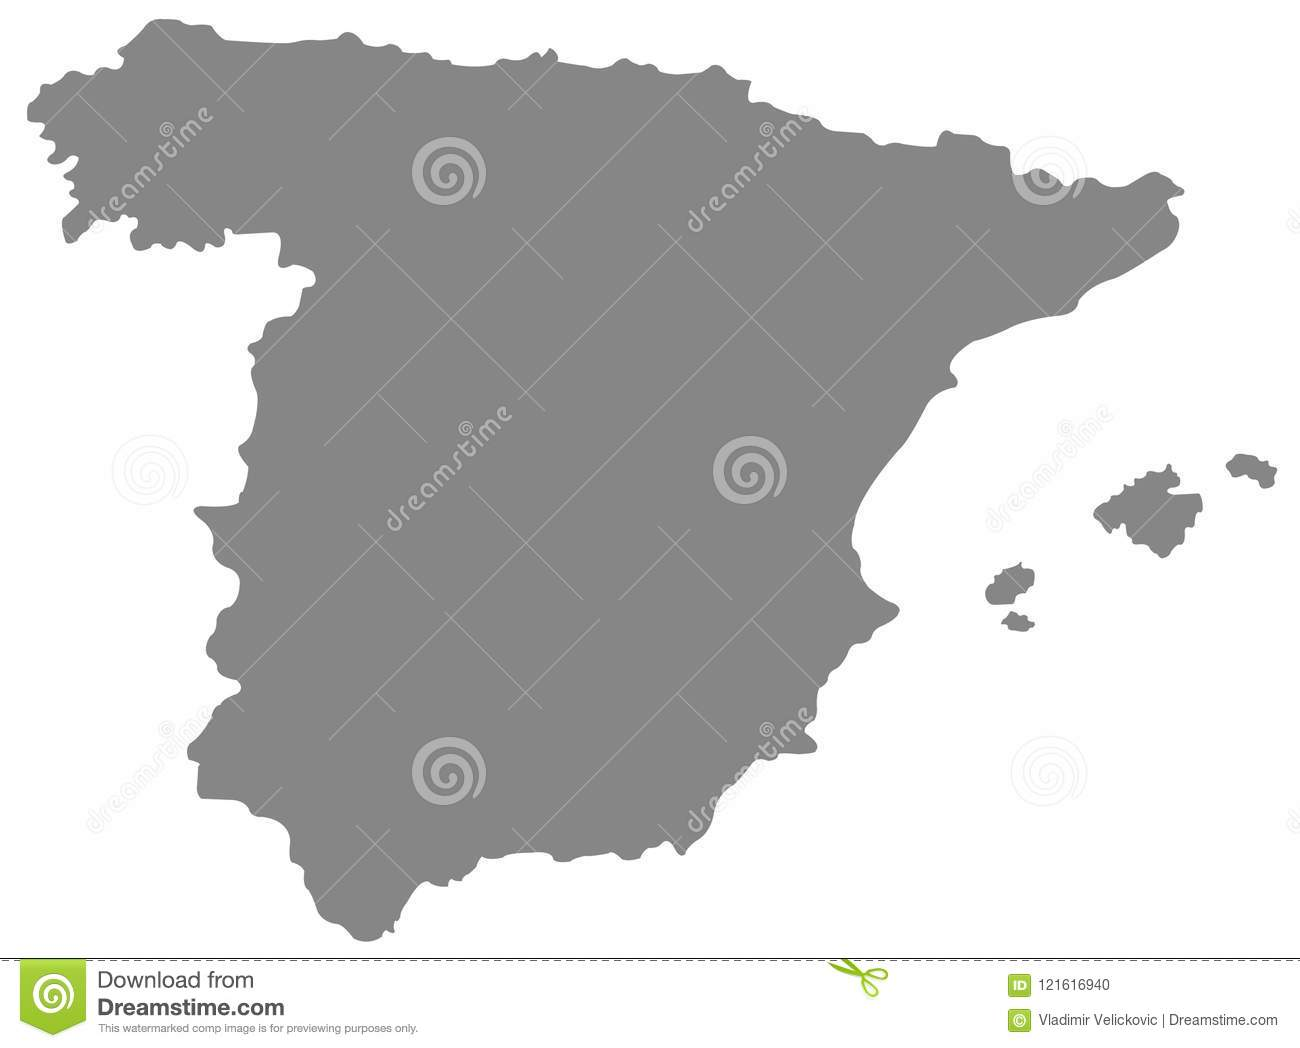 Spain Map - Sovereign State On The Iberian Peninsula In Europe Stock ...